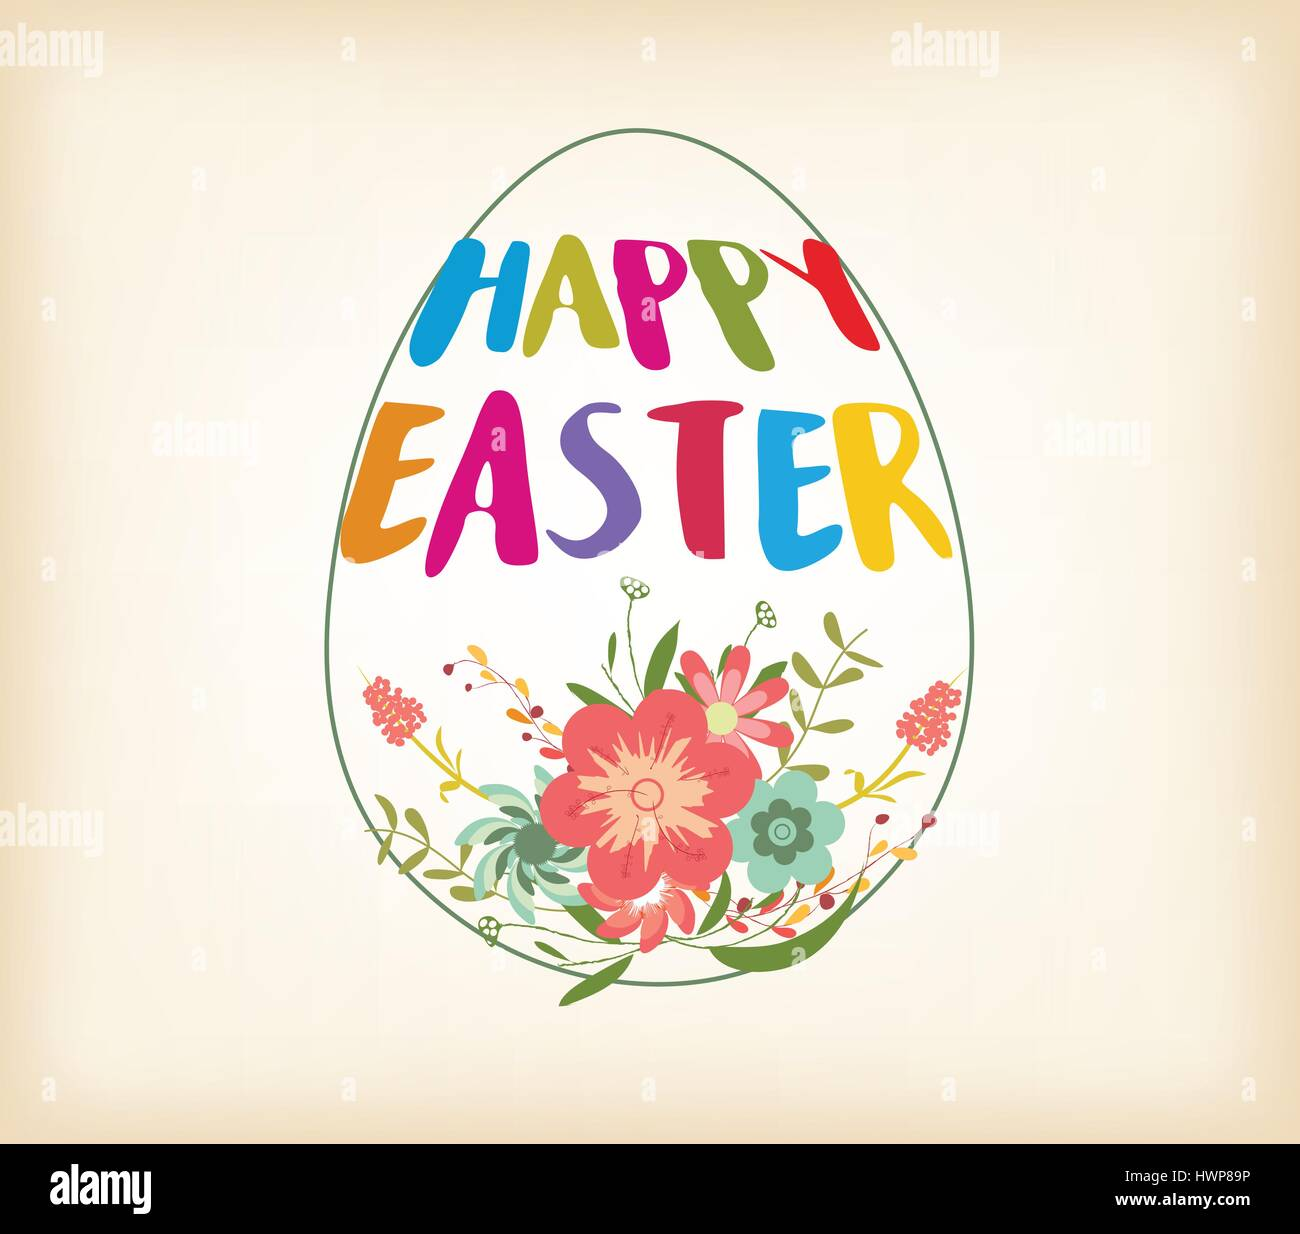 Happy Easter Typographical Background With And Flowers - Stock Image